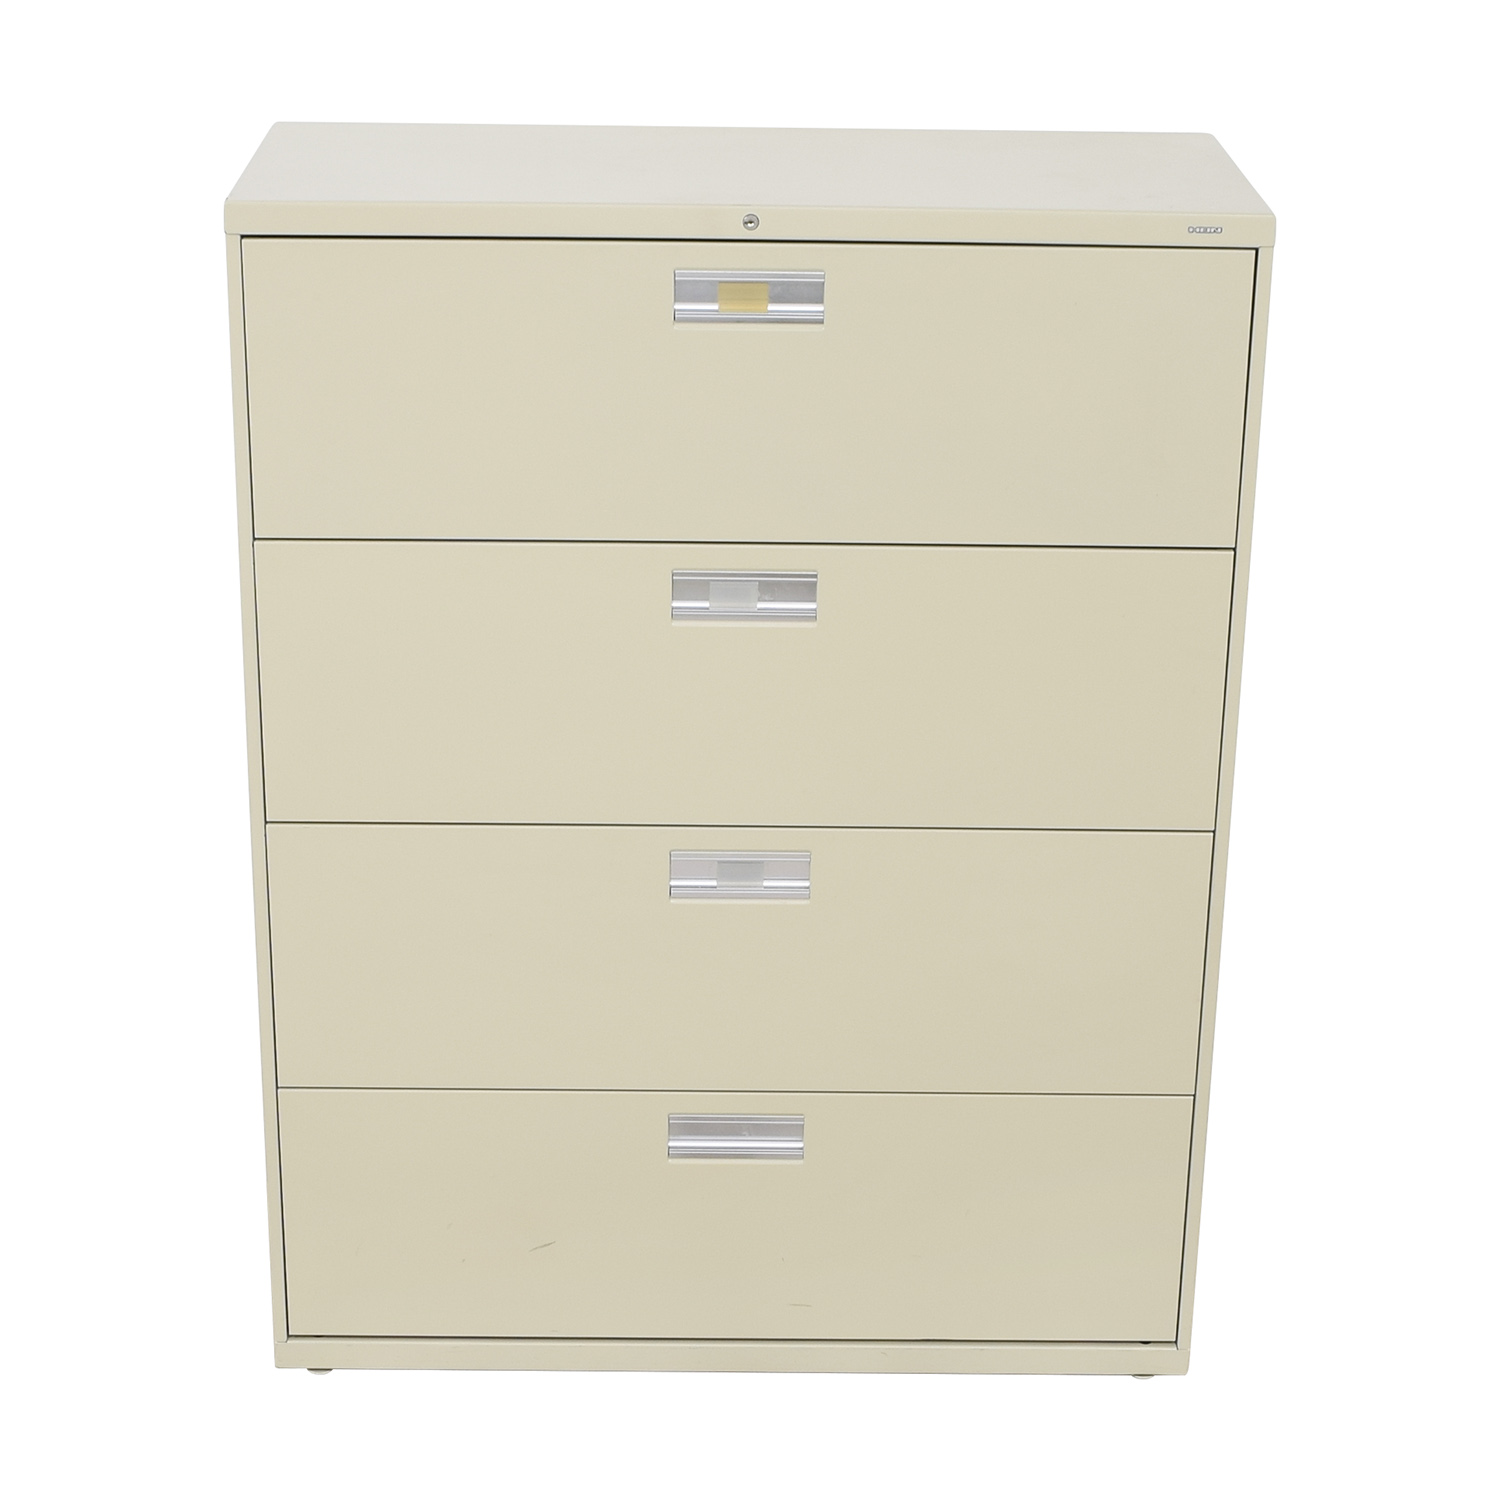 Hon Hon Four Drawer File Cabinet used